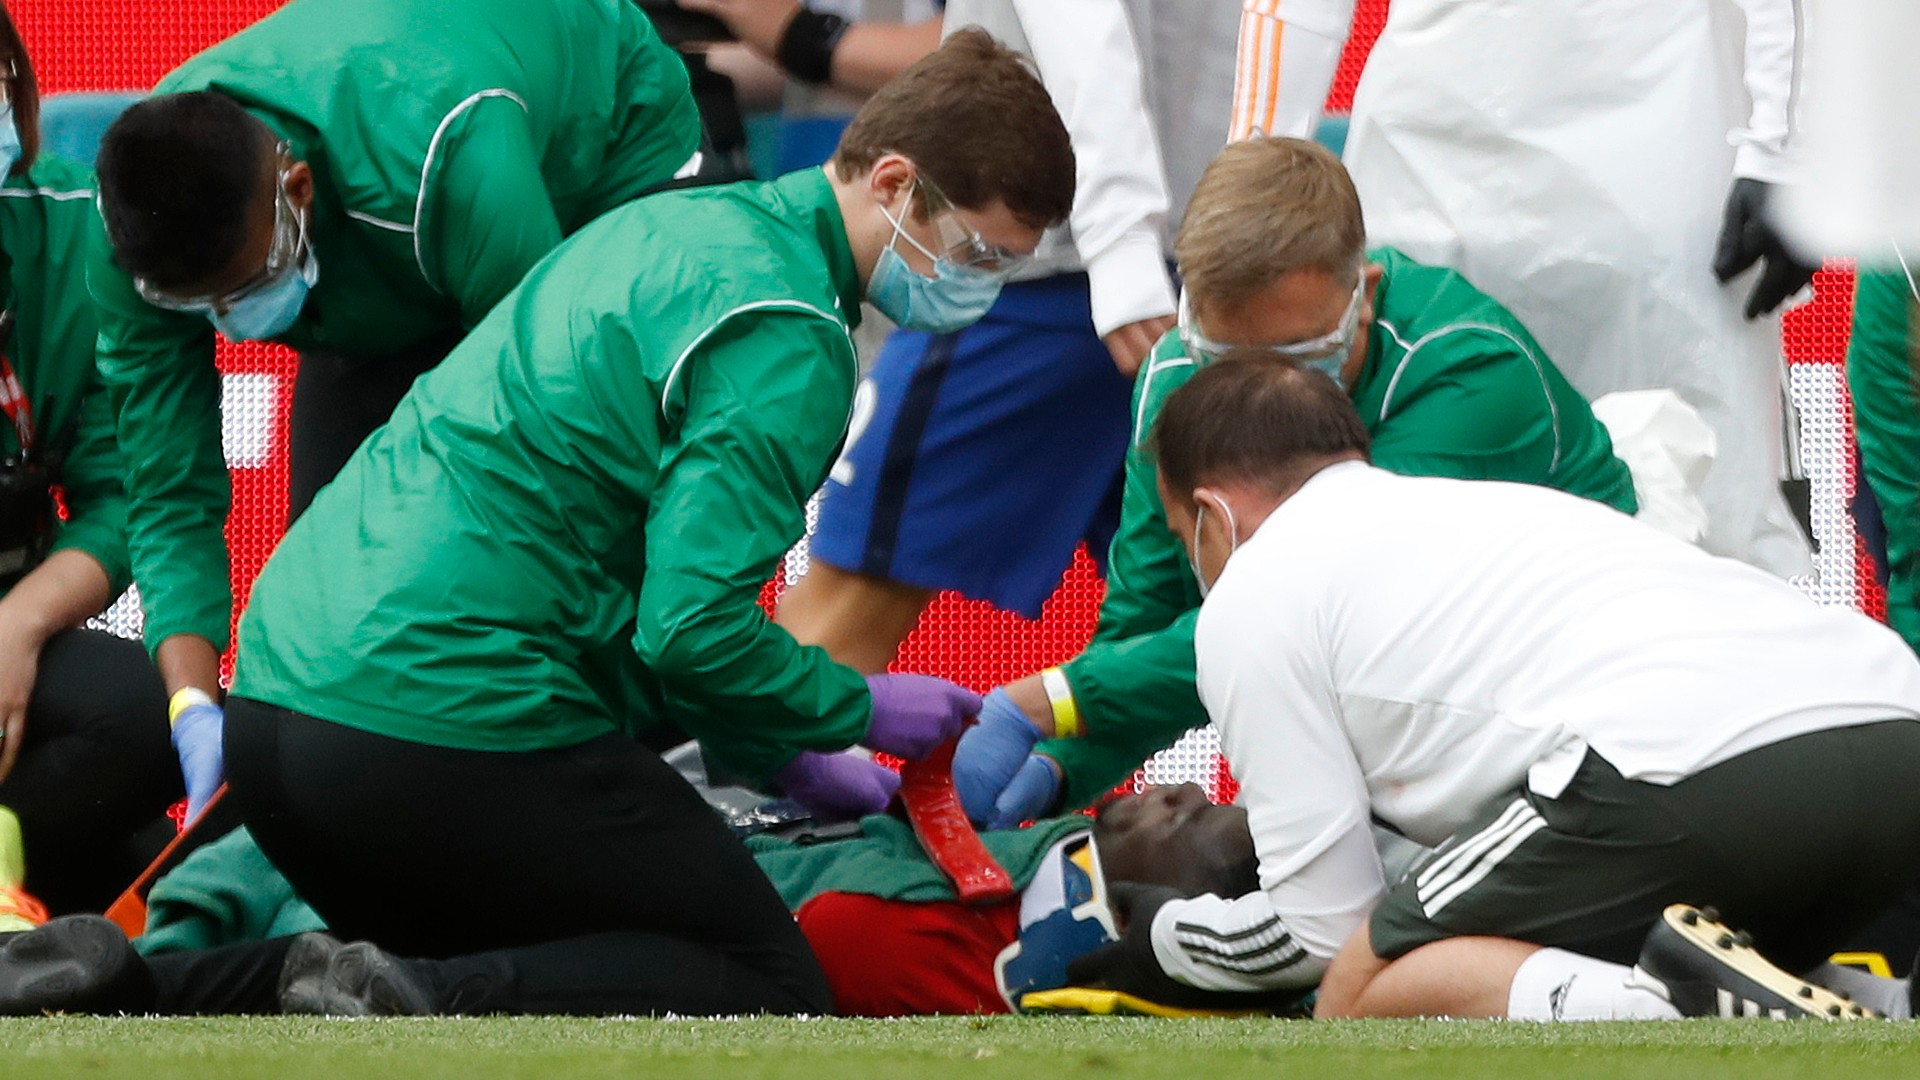 Man Utd defender Eric Bailly released from hospital